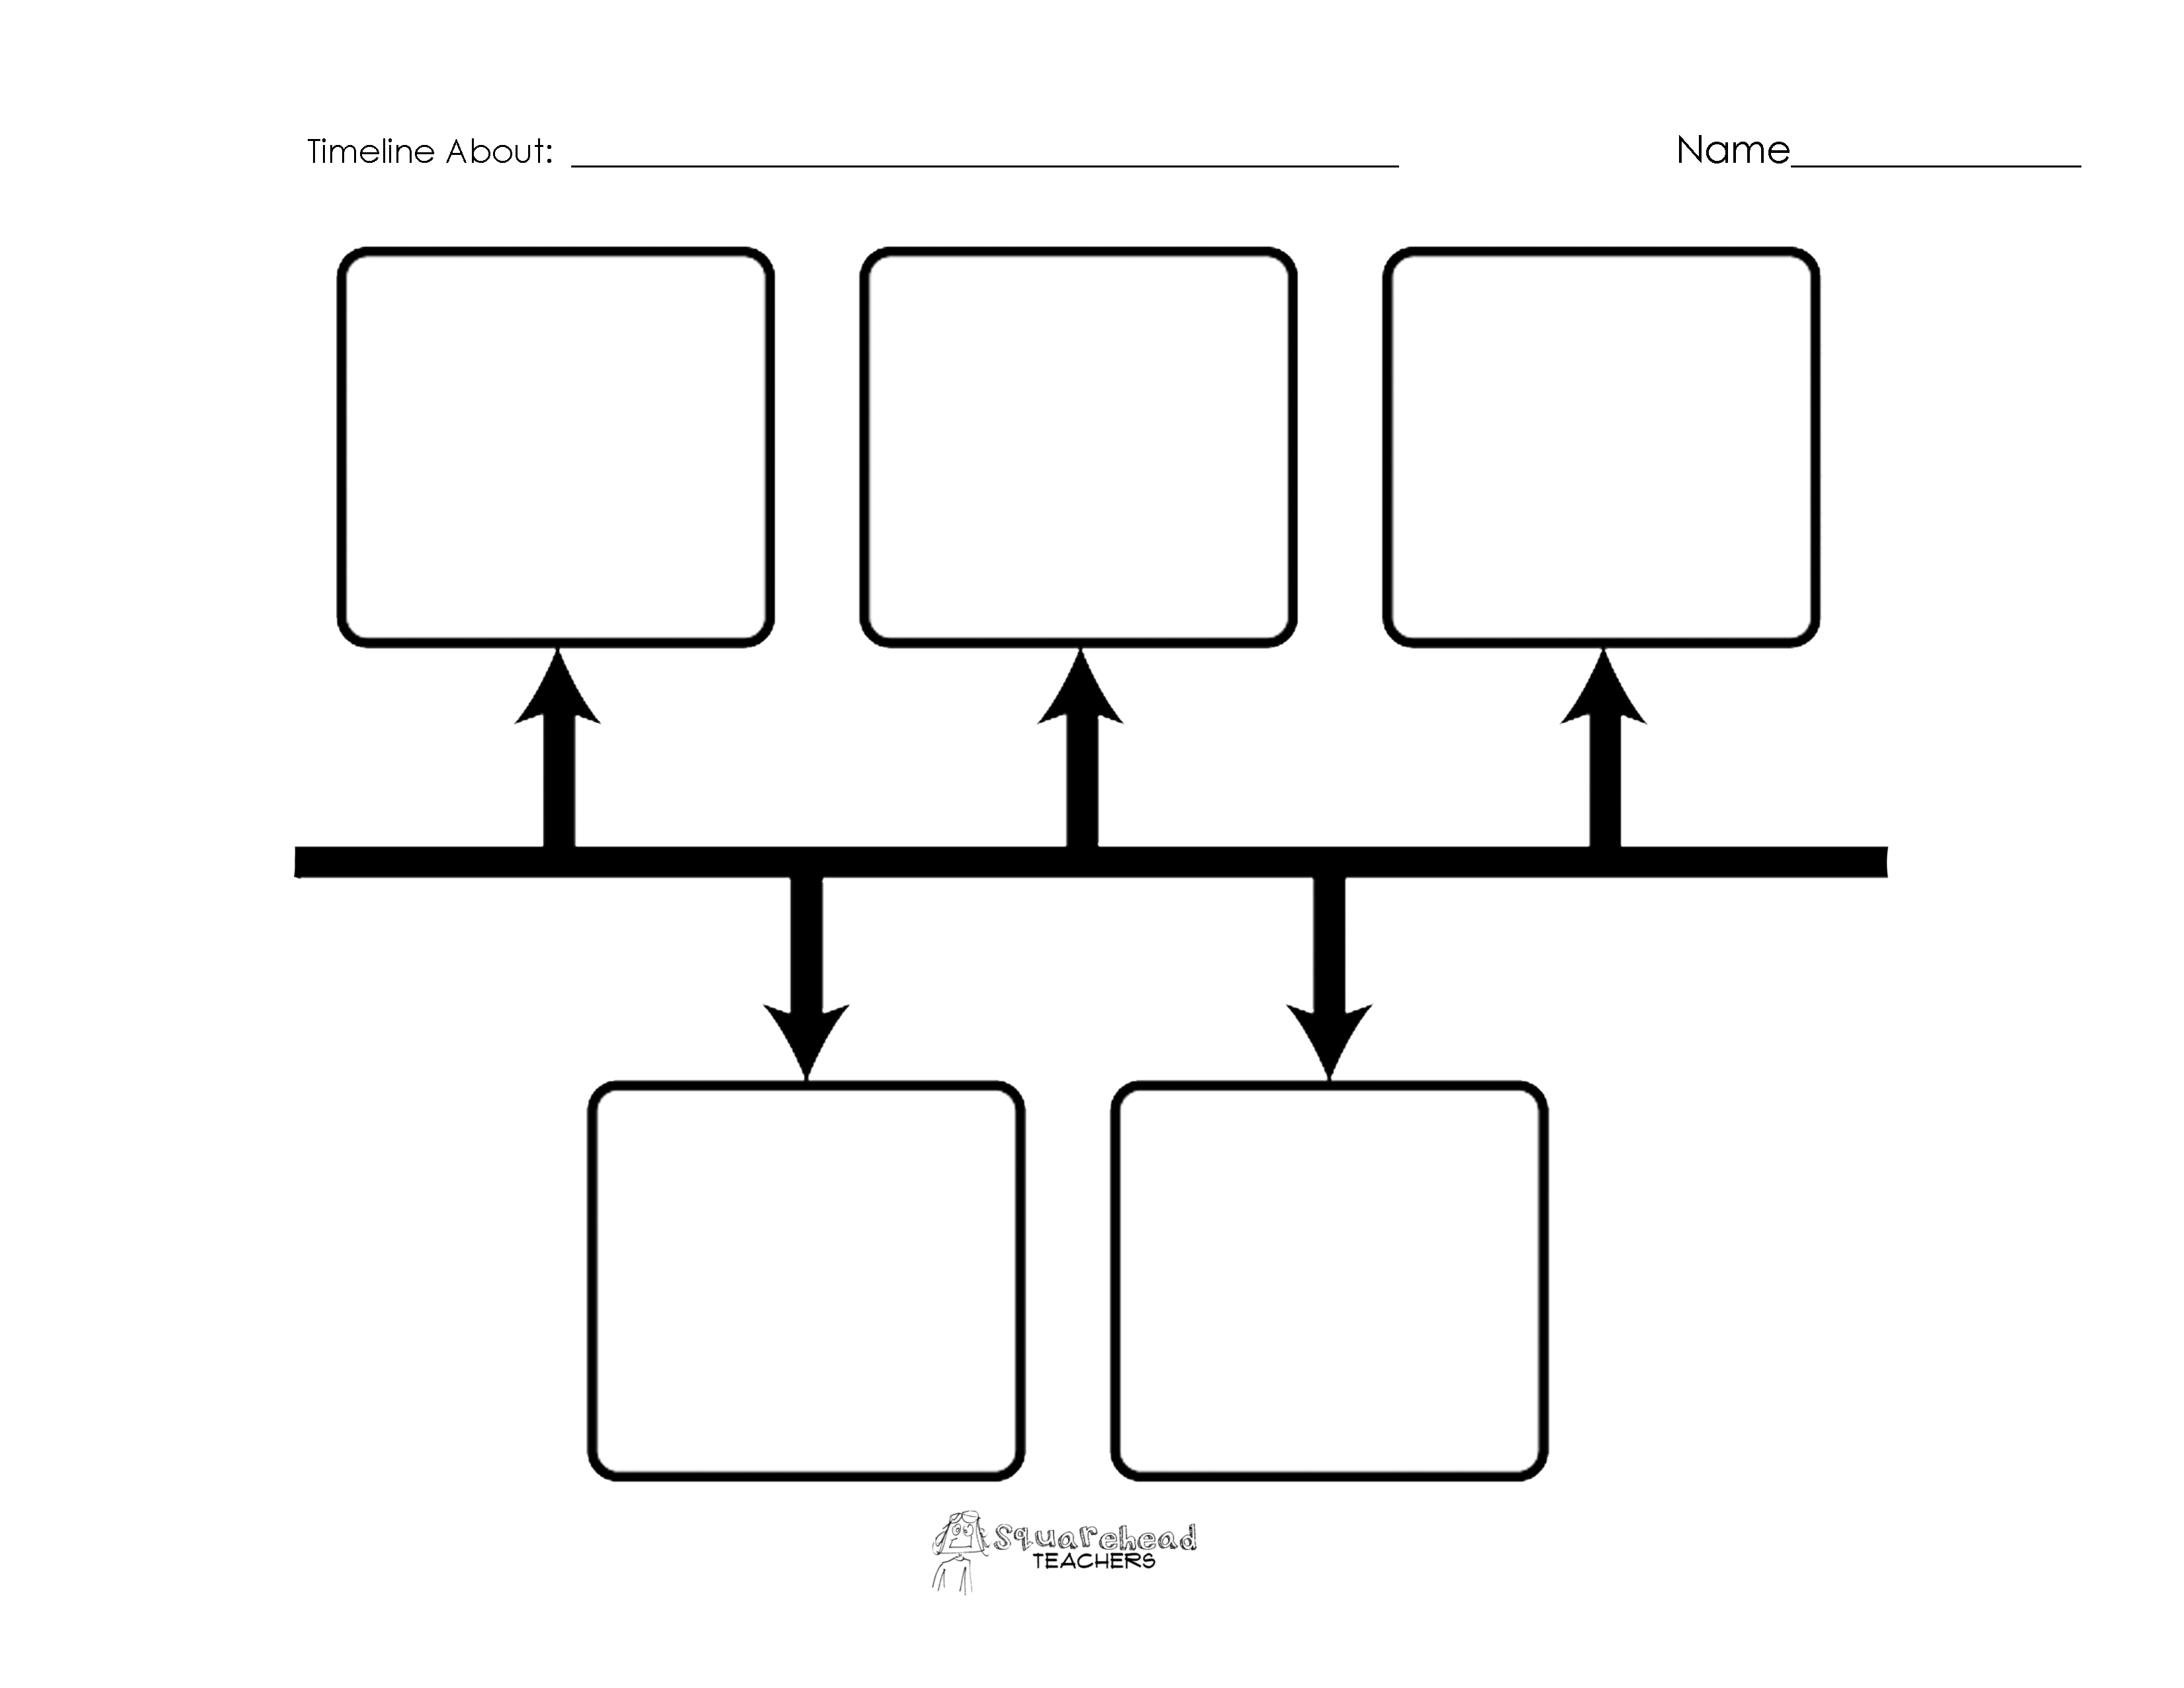 image regarding Printable Timelines referred to as Blank Timeline Printables Squarehead Lecturers